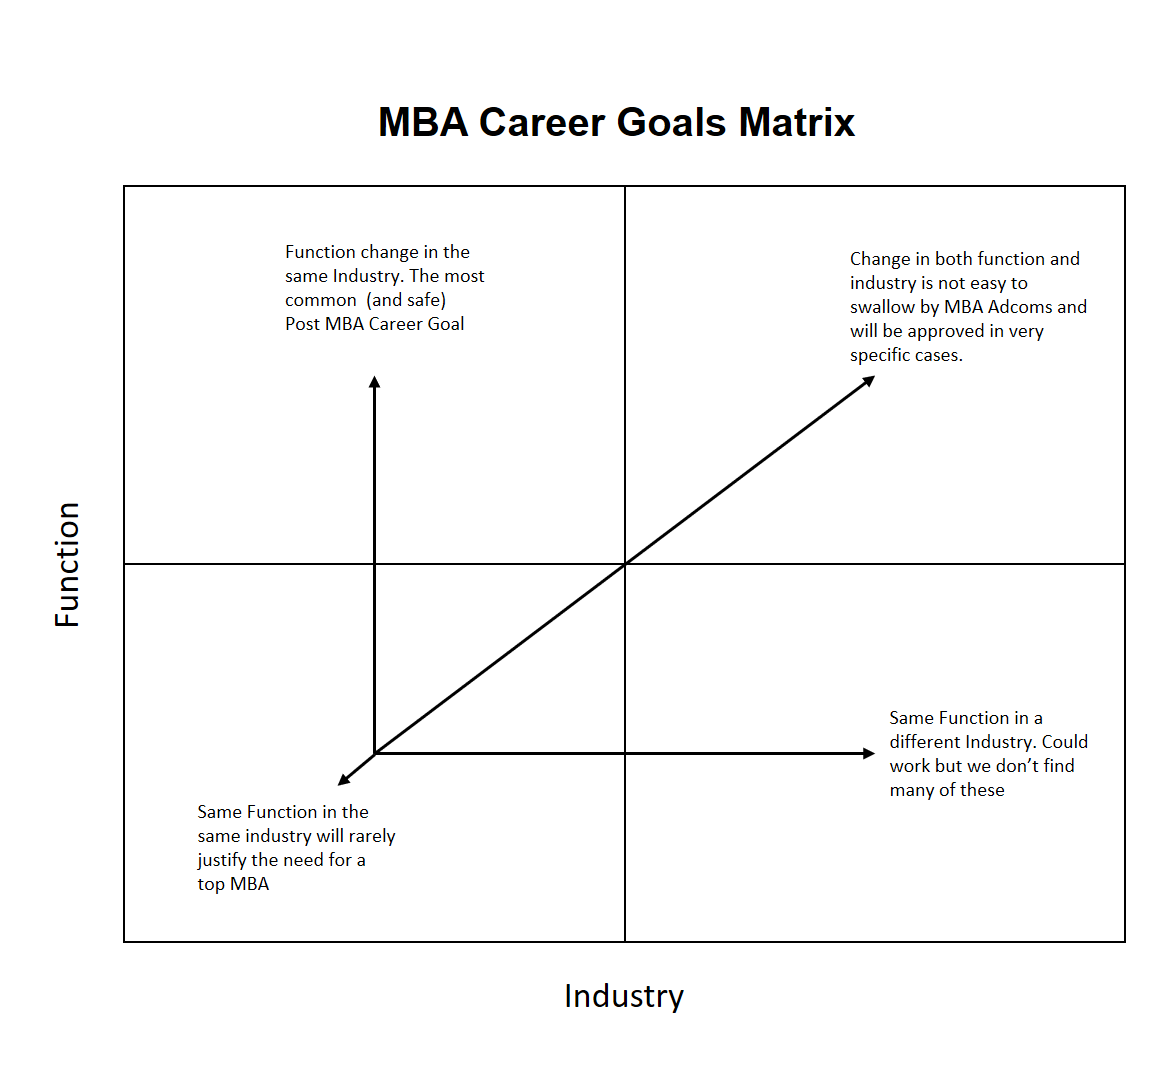 wharton essay analysis ivy mba consulting career matrix